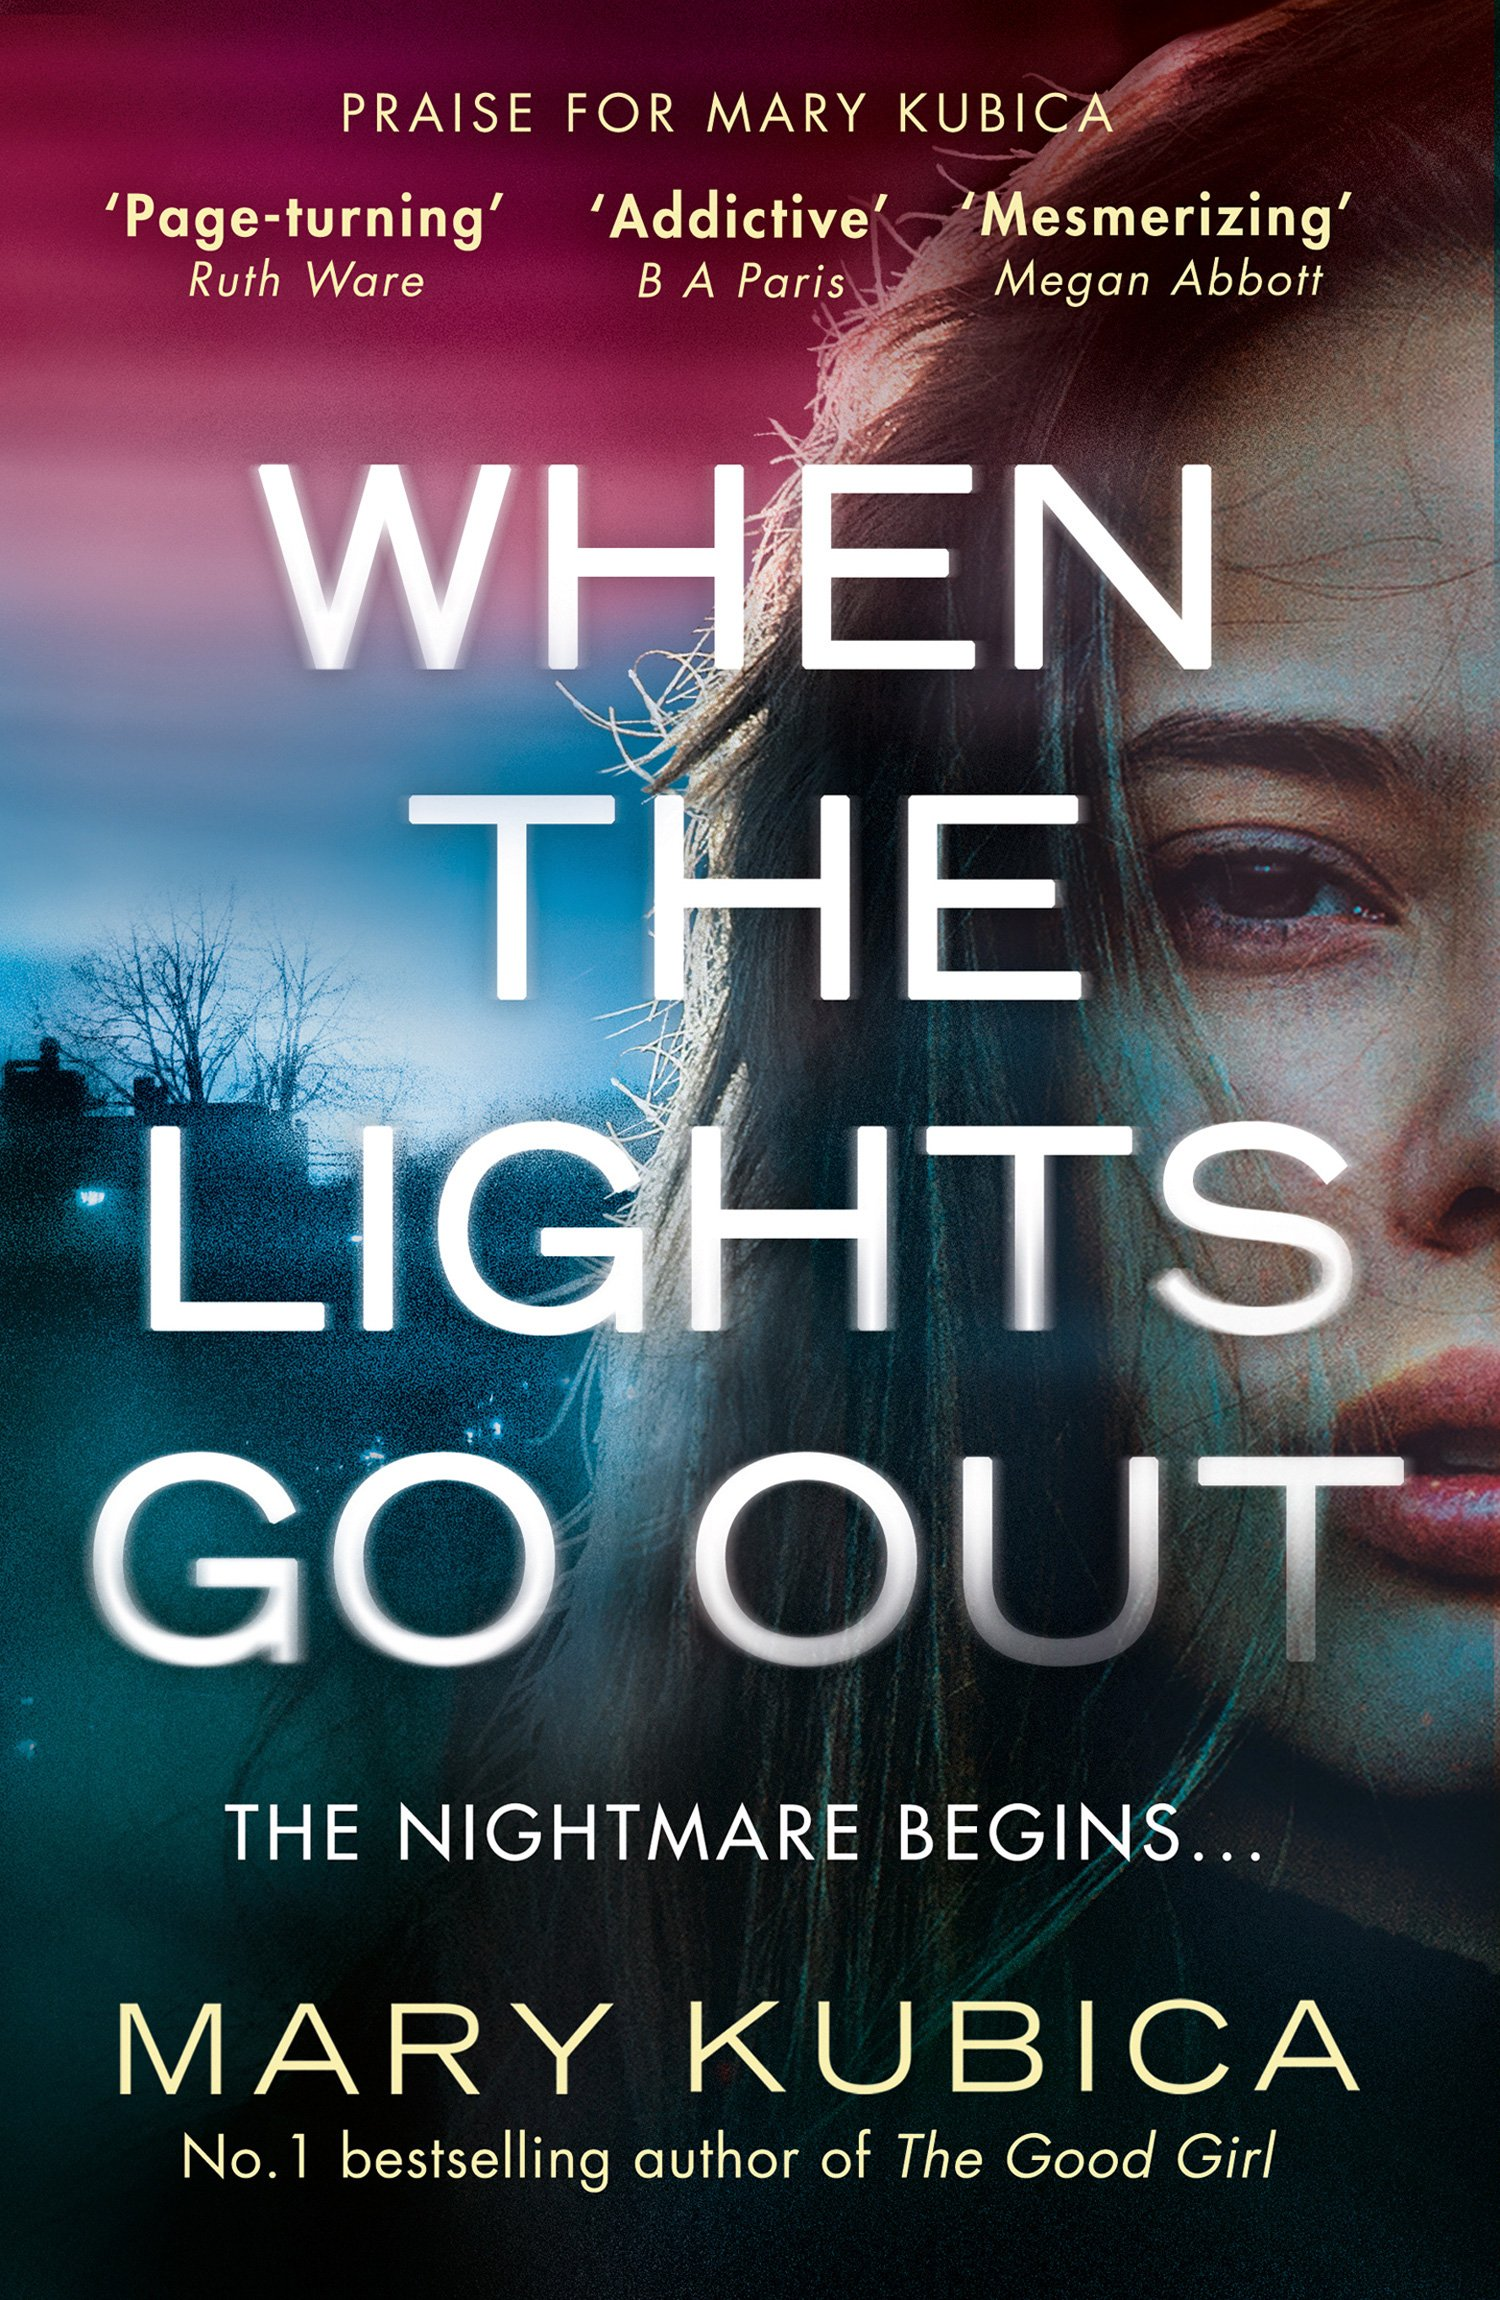 when the lights go out by mary kubica.jpg